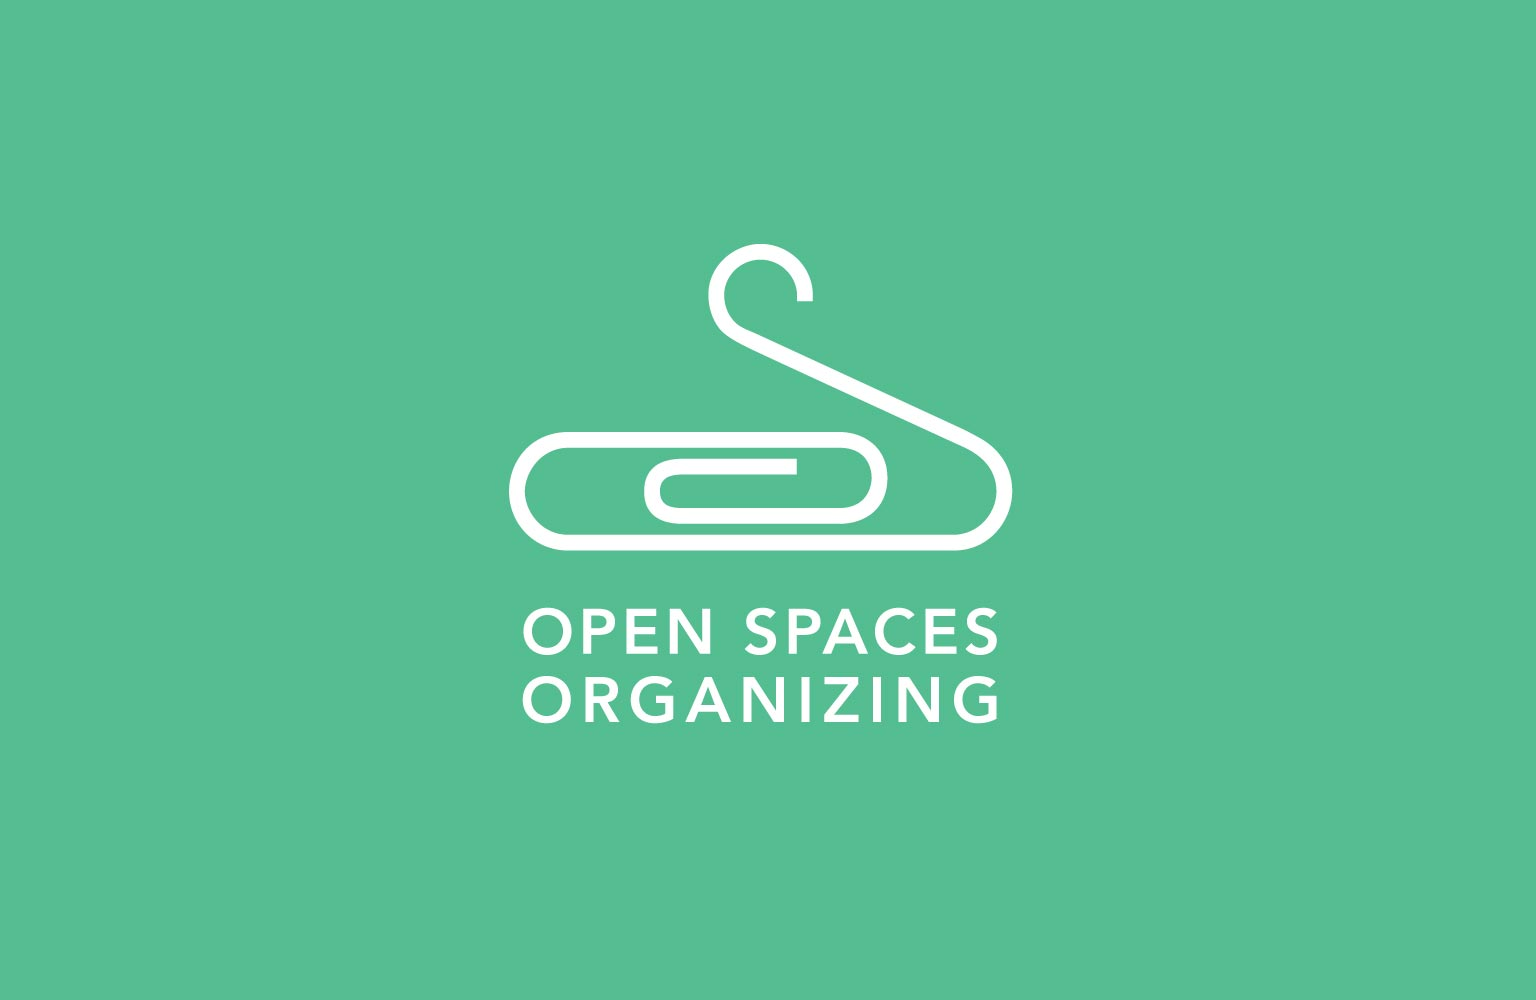 Open Spaces Organizing Logo